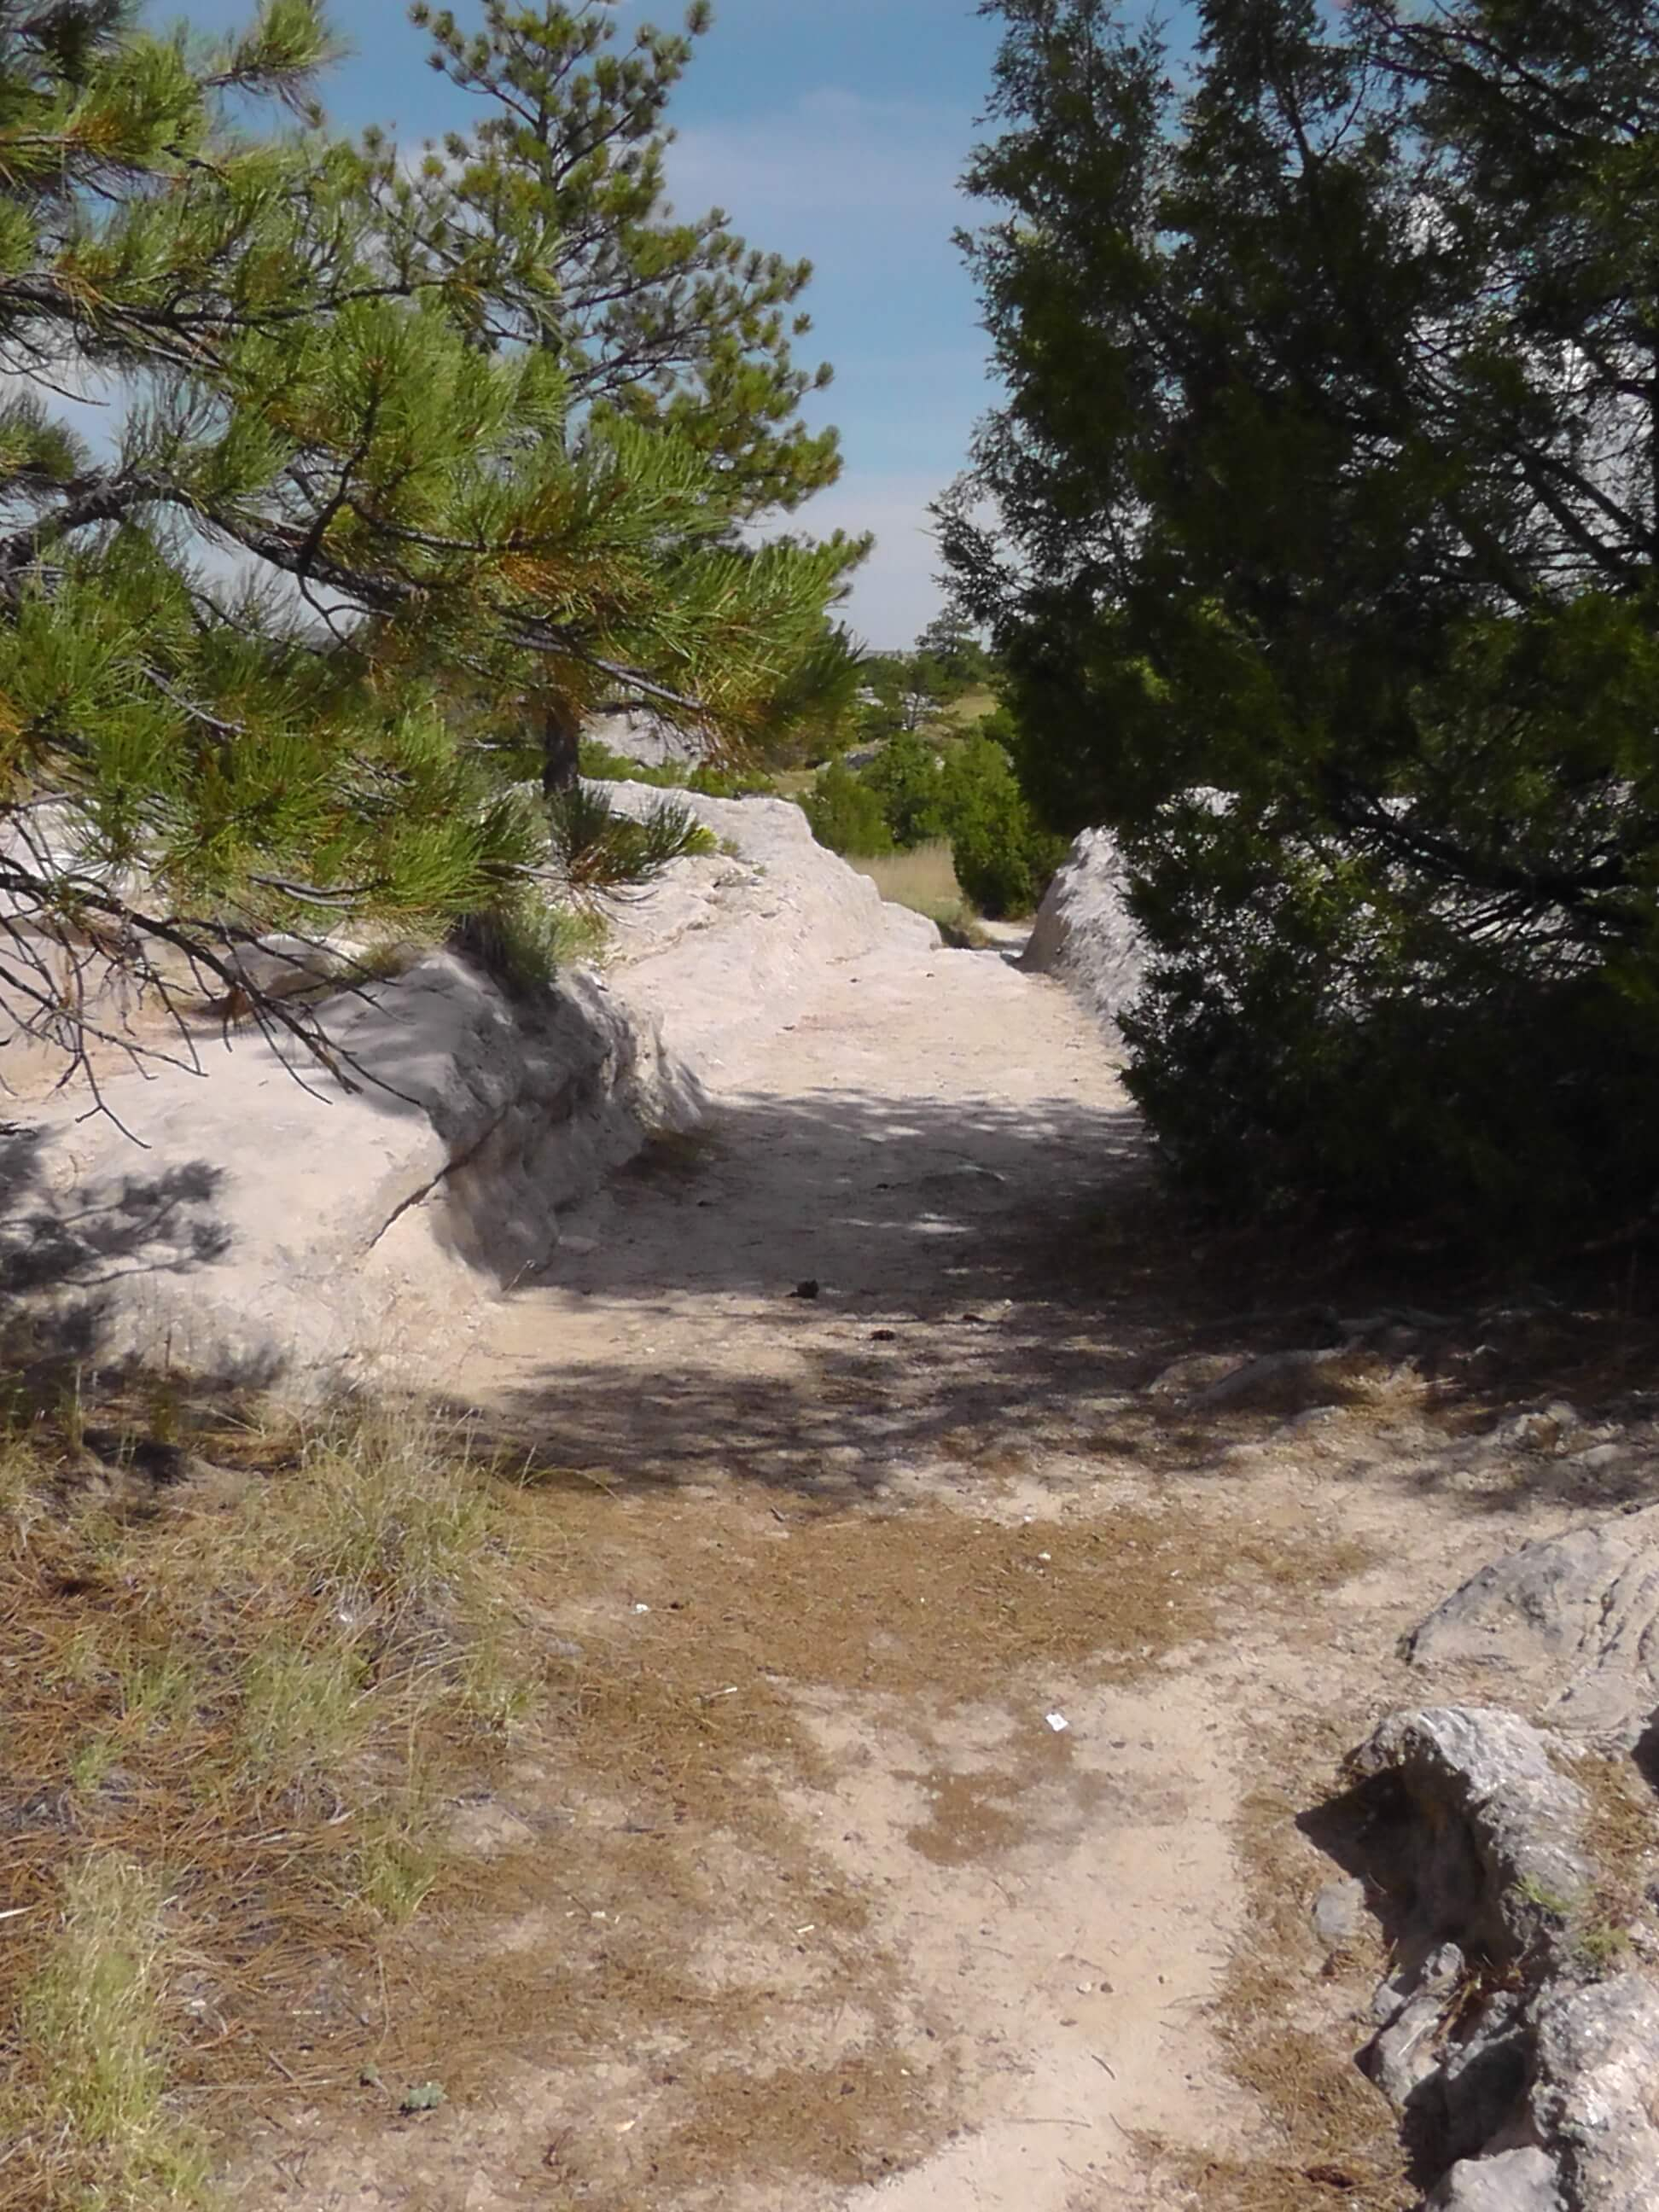 ruts in sandstone on the Oregon Trail, Guernsey, Wyoming